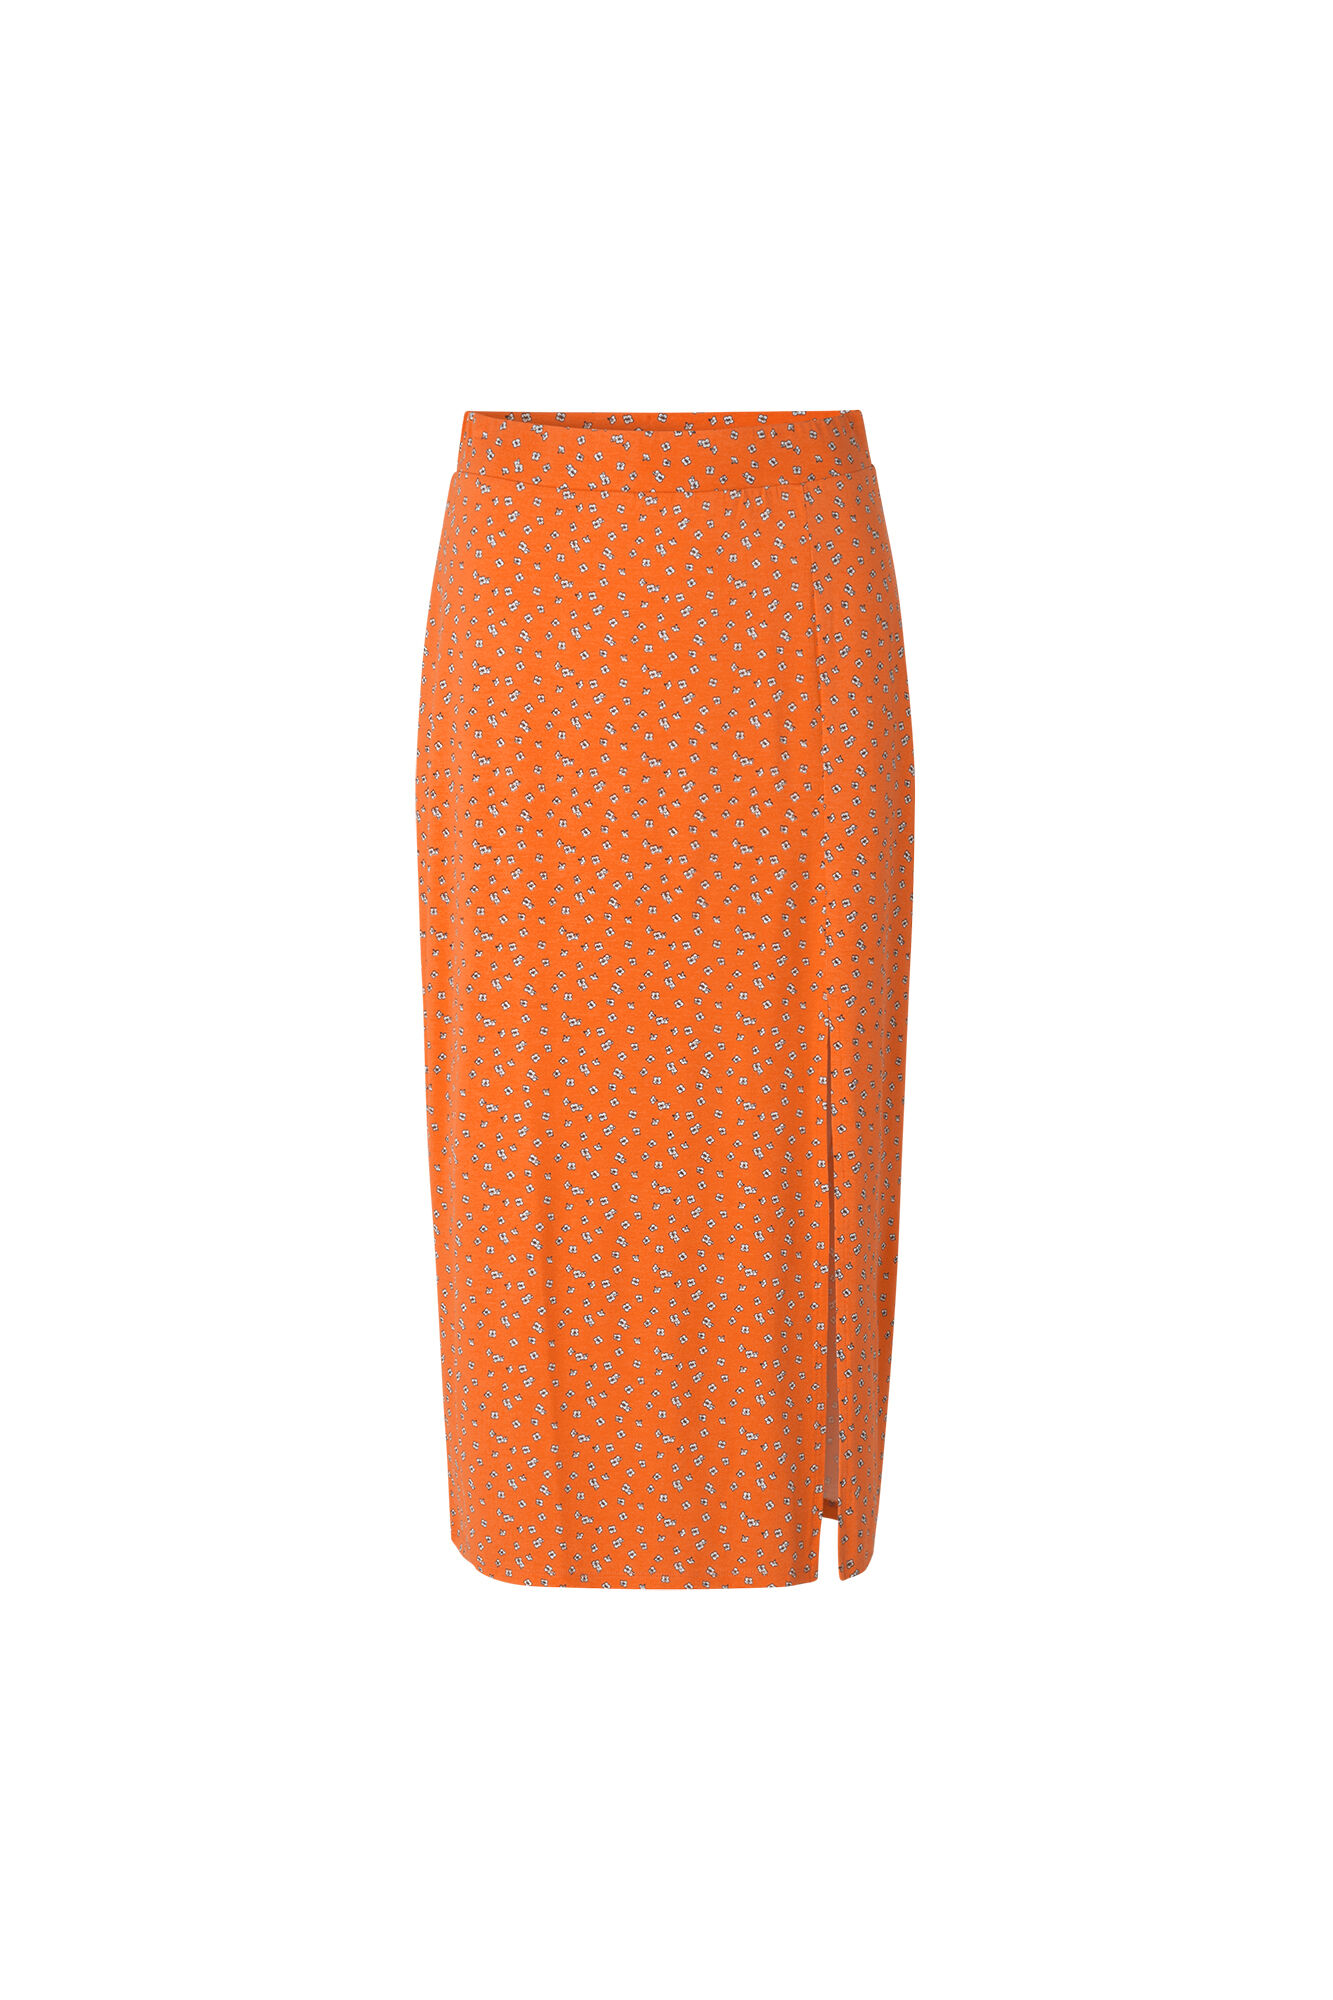 ENWIMBLEY SKIRT AOP 5890